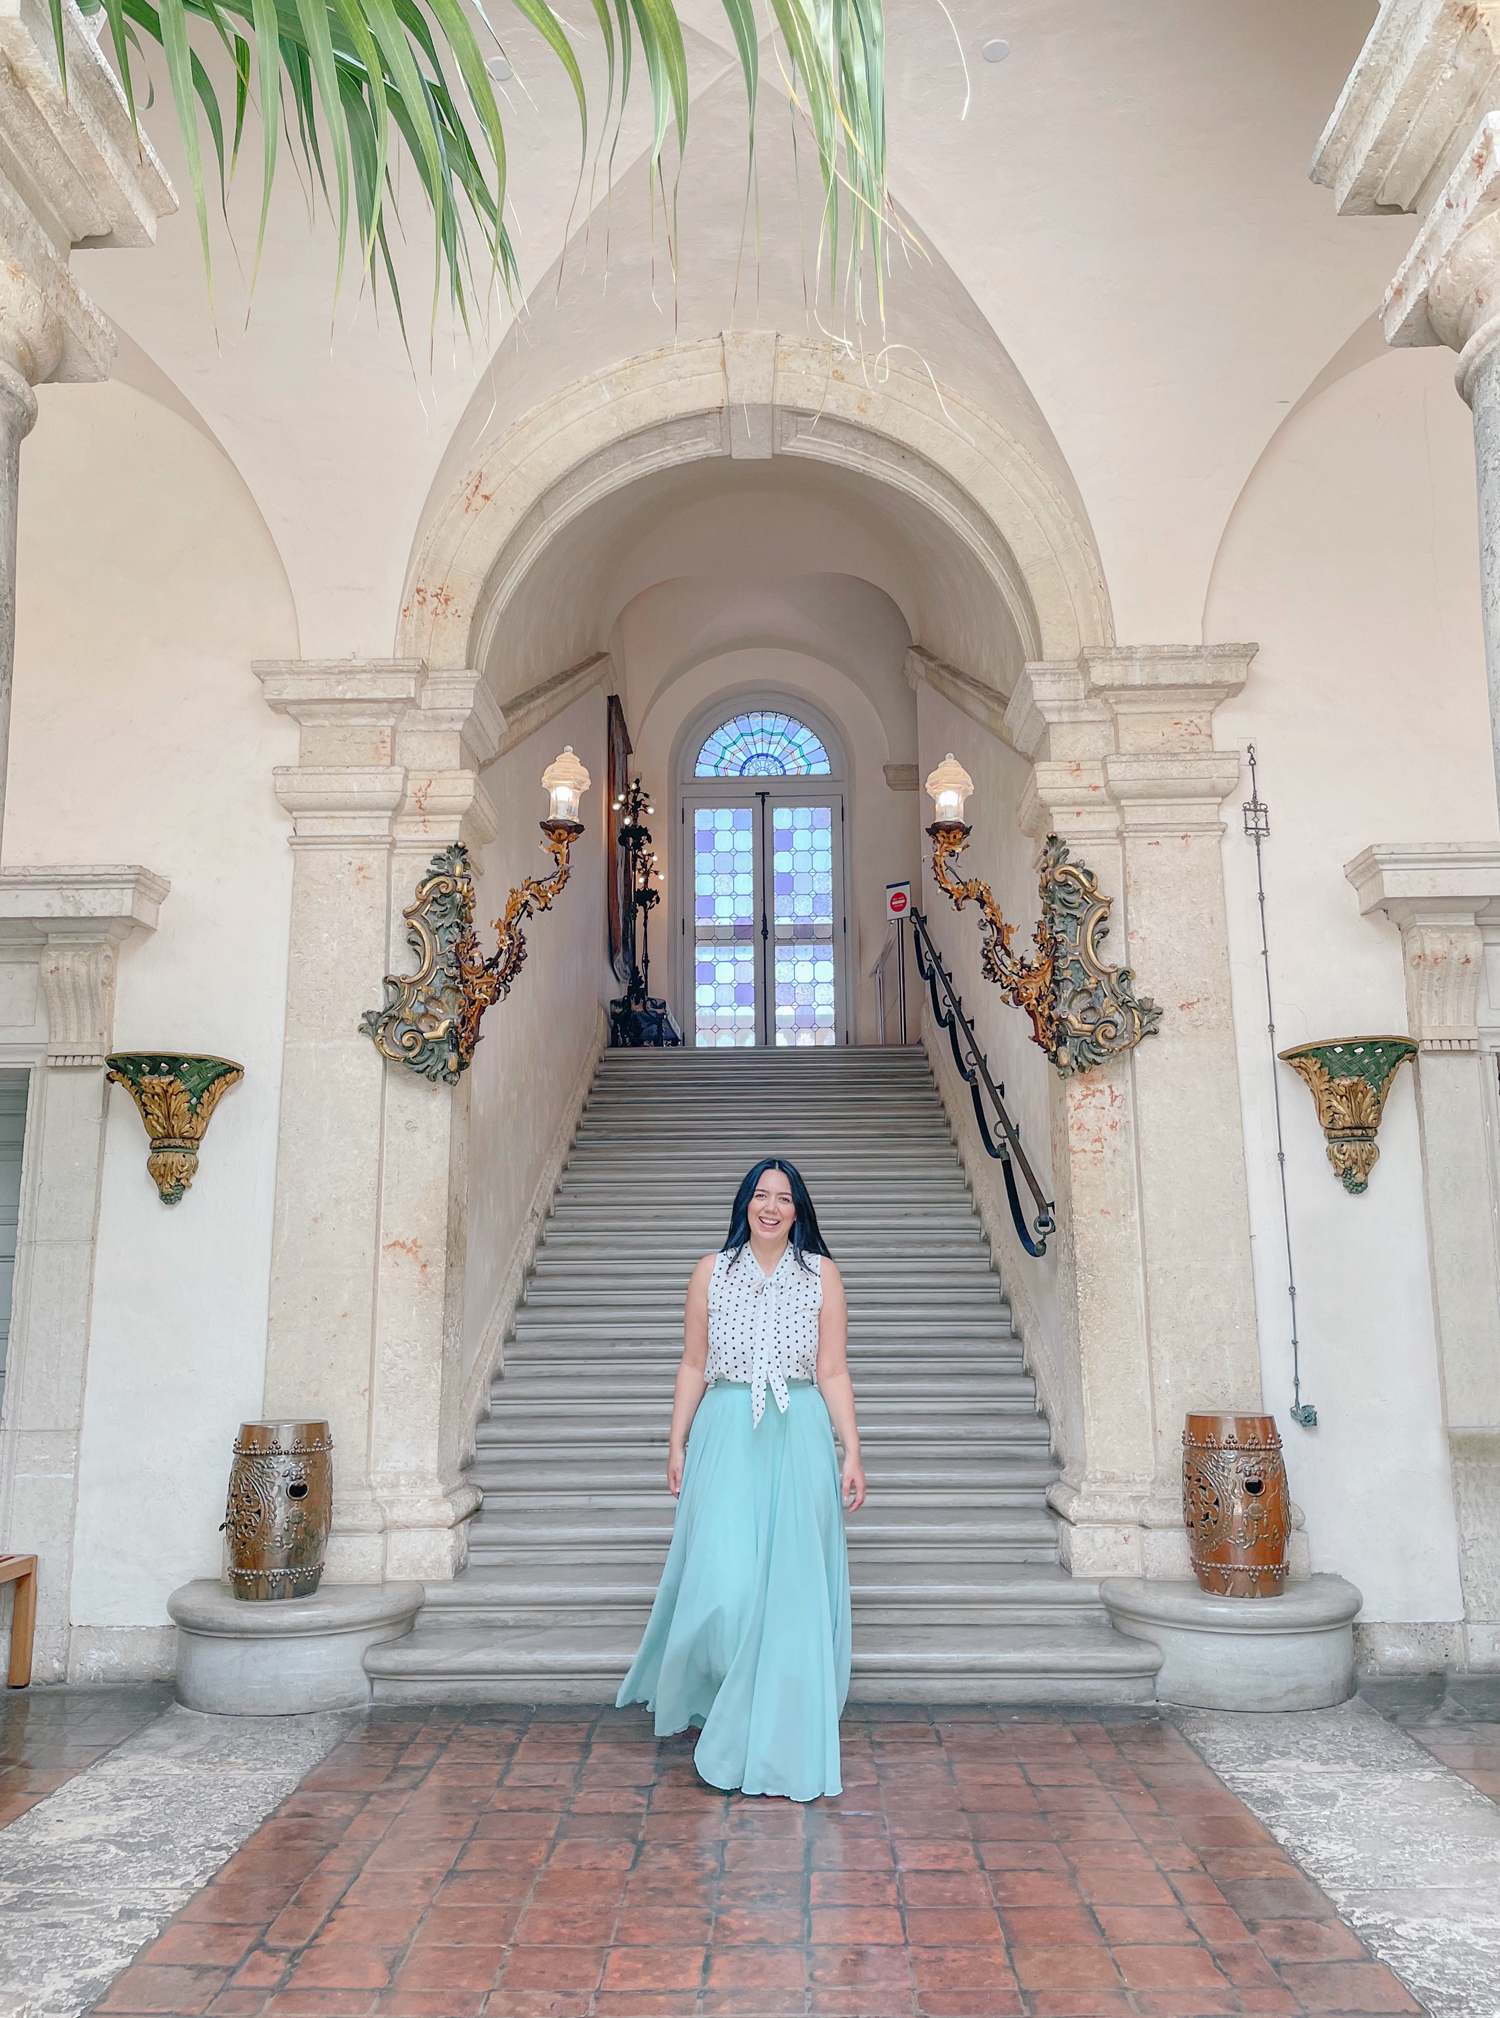 Best Things To Do in Miami: Vizacaya Museum & Gardens inside staircase